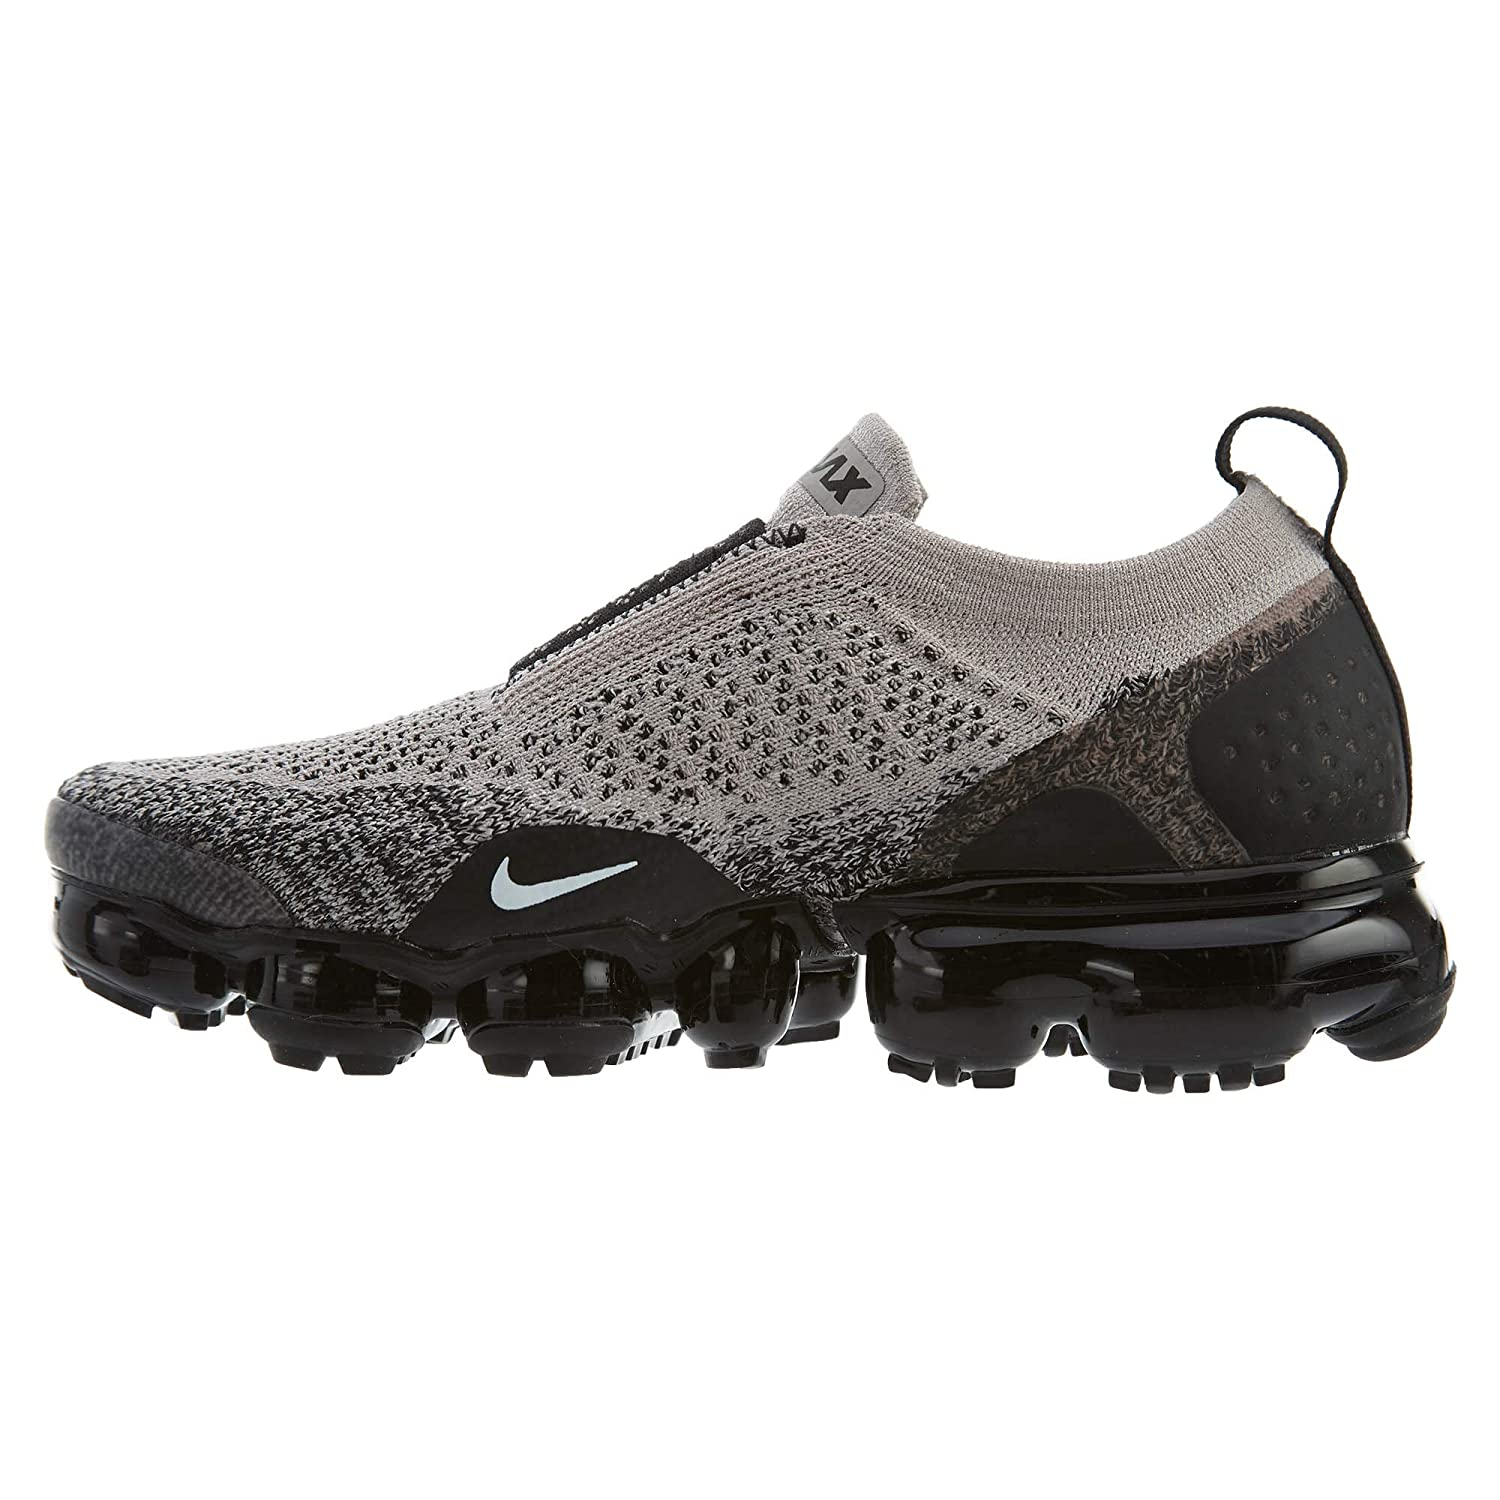 buy online e5a1c 2d303 Amazon.com | Nike Womens Air Vapormax Flyknit Moc 2 Running ...